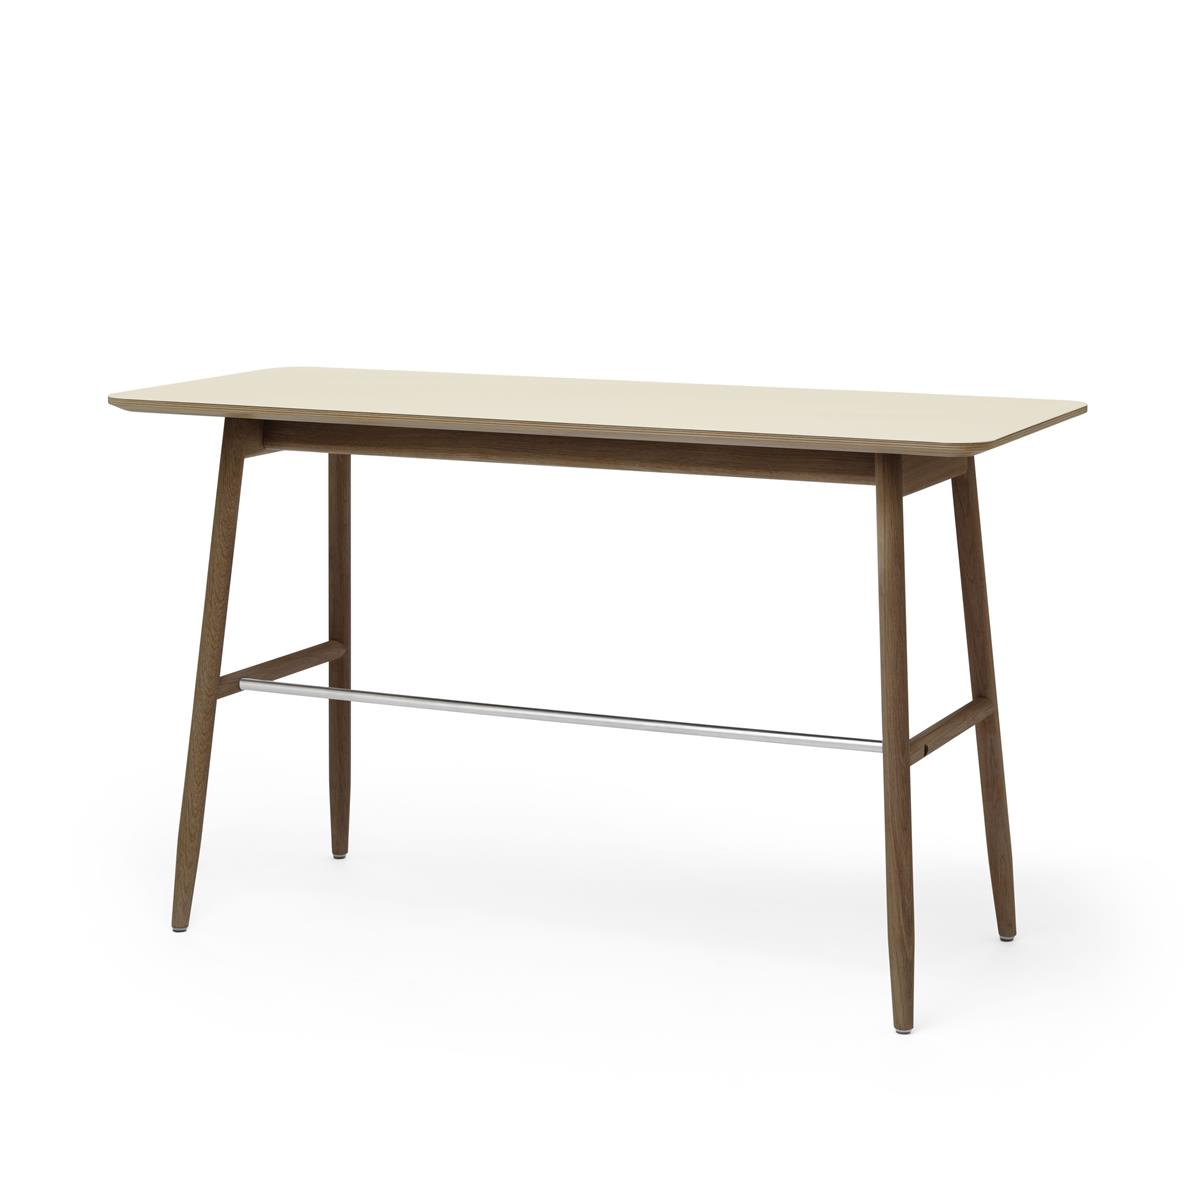 Icha Desk 120 x 50 cm i Pearl & Walnut Stained